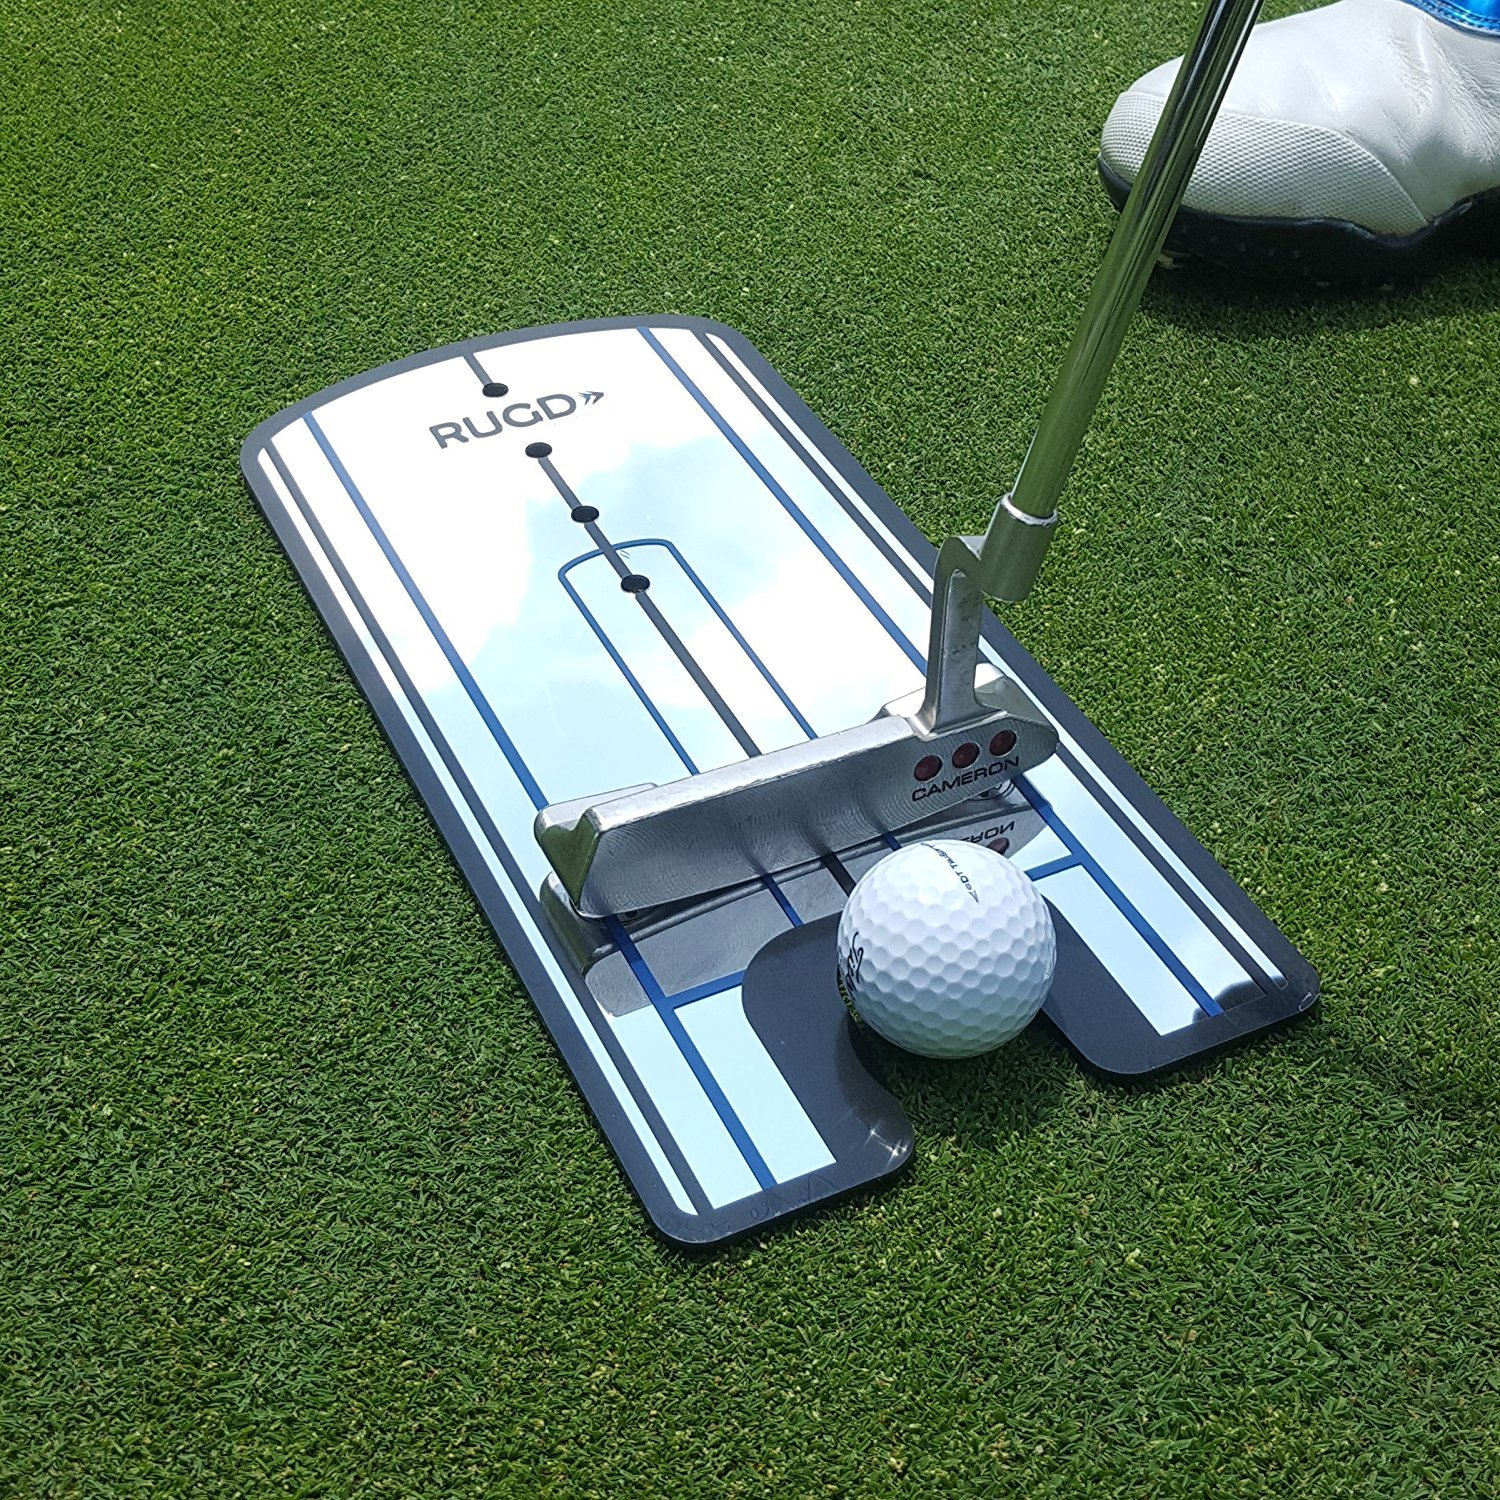 Putting Alignment Mirror - With 6-inch Tempo Drawback Marker